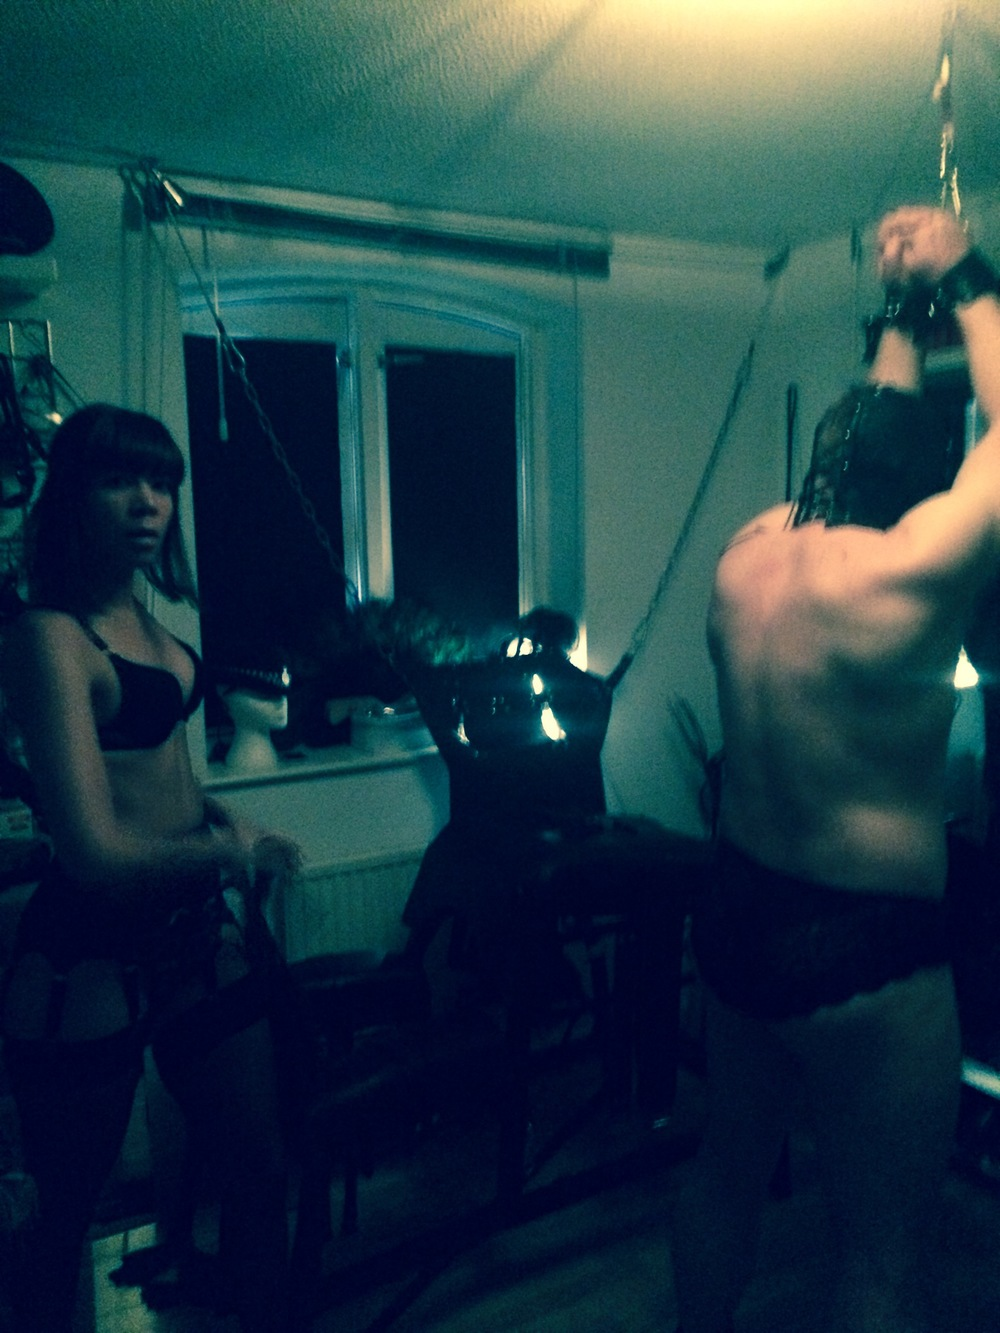 bdsm-whipping-sessions-dungeon-mistress-london-best-dominatrix-kings-cross